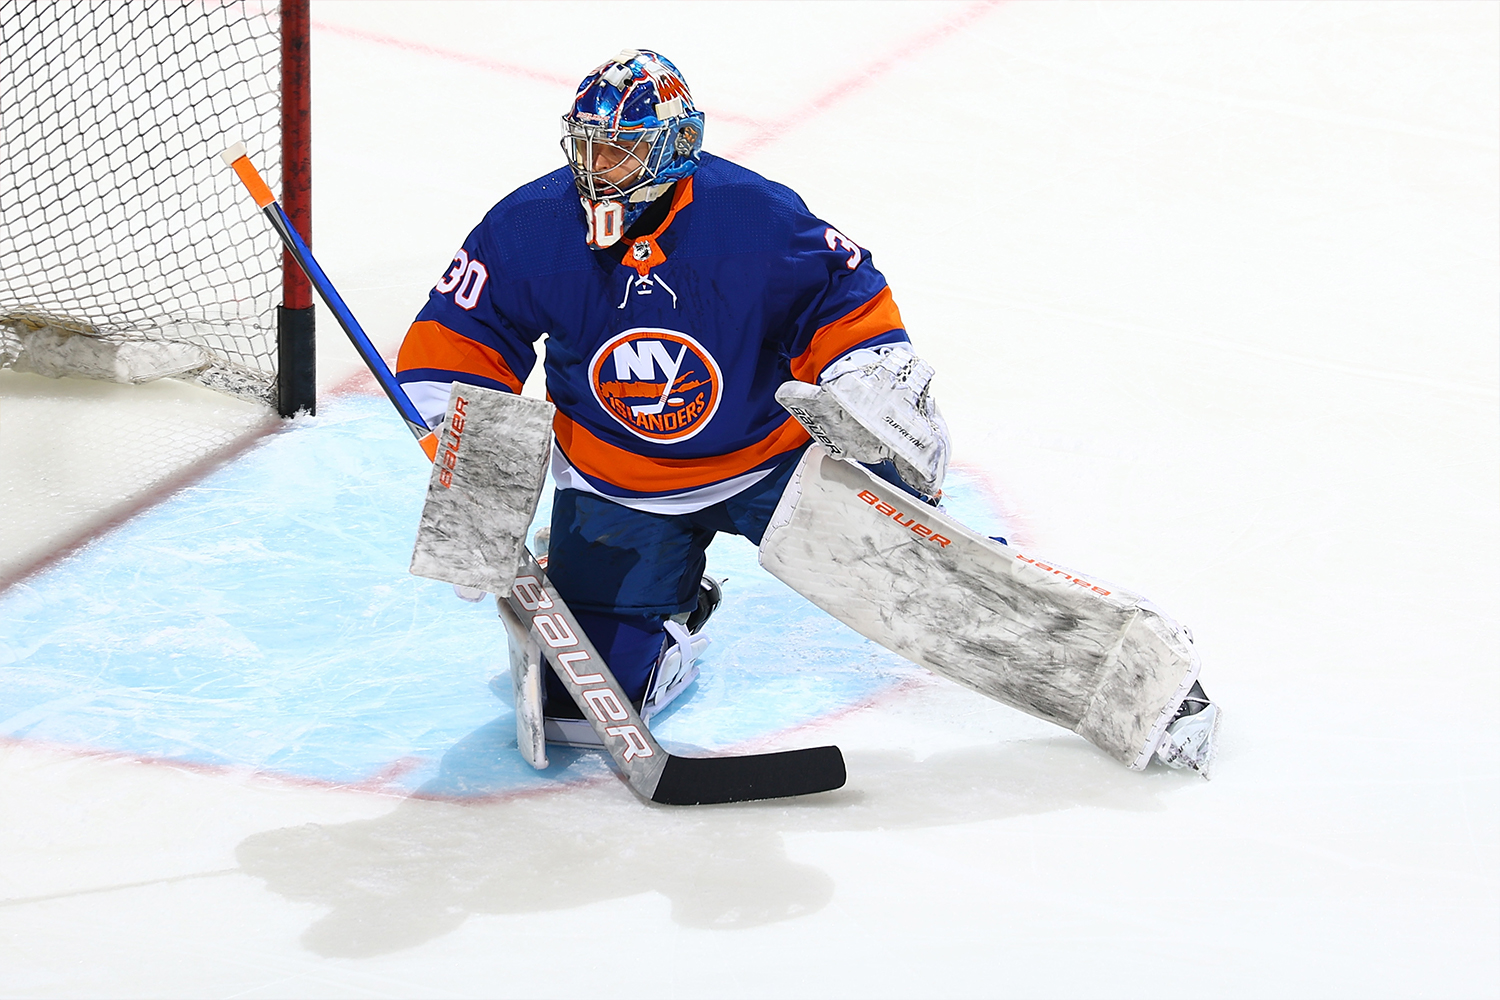 Ilya Sorokin #30 of the New York Islanders skates during warm-ups prior to the game against the Pittsburgh Penguins at Nassau Coliseum on February 28, 2021